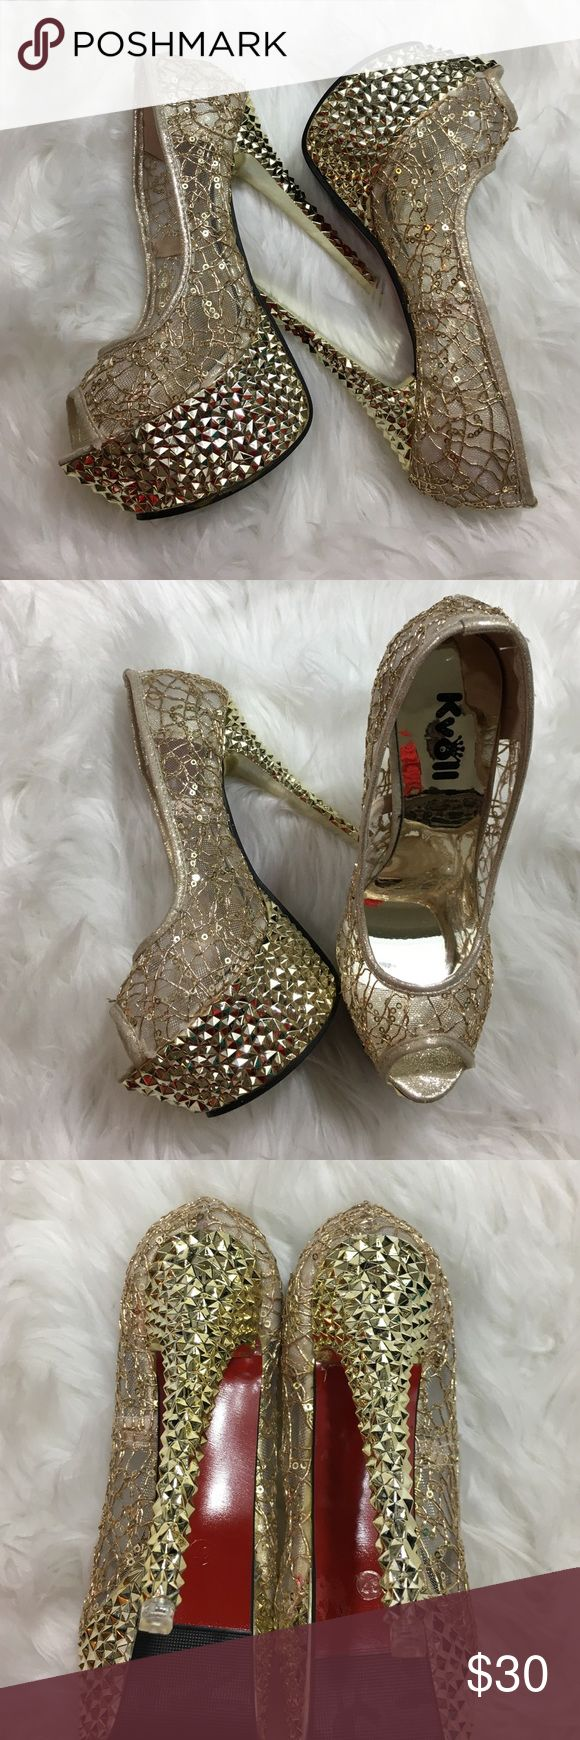 Kvoll gold Stilettos❗️Sexy Heels ✨ Party NWOT Look super sexy in these Gold Stilettos. The top is a see through Mesh with sequin! The heel is a metallic gold! Stunning! Def a show stopper. These heels are brand new! 👠👌🏼💃🏻 kvoll Shoes Heels